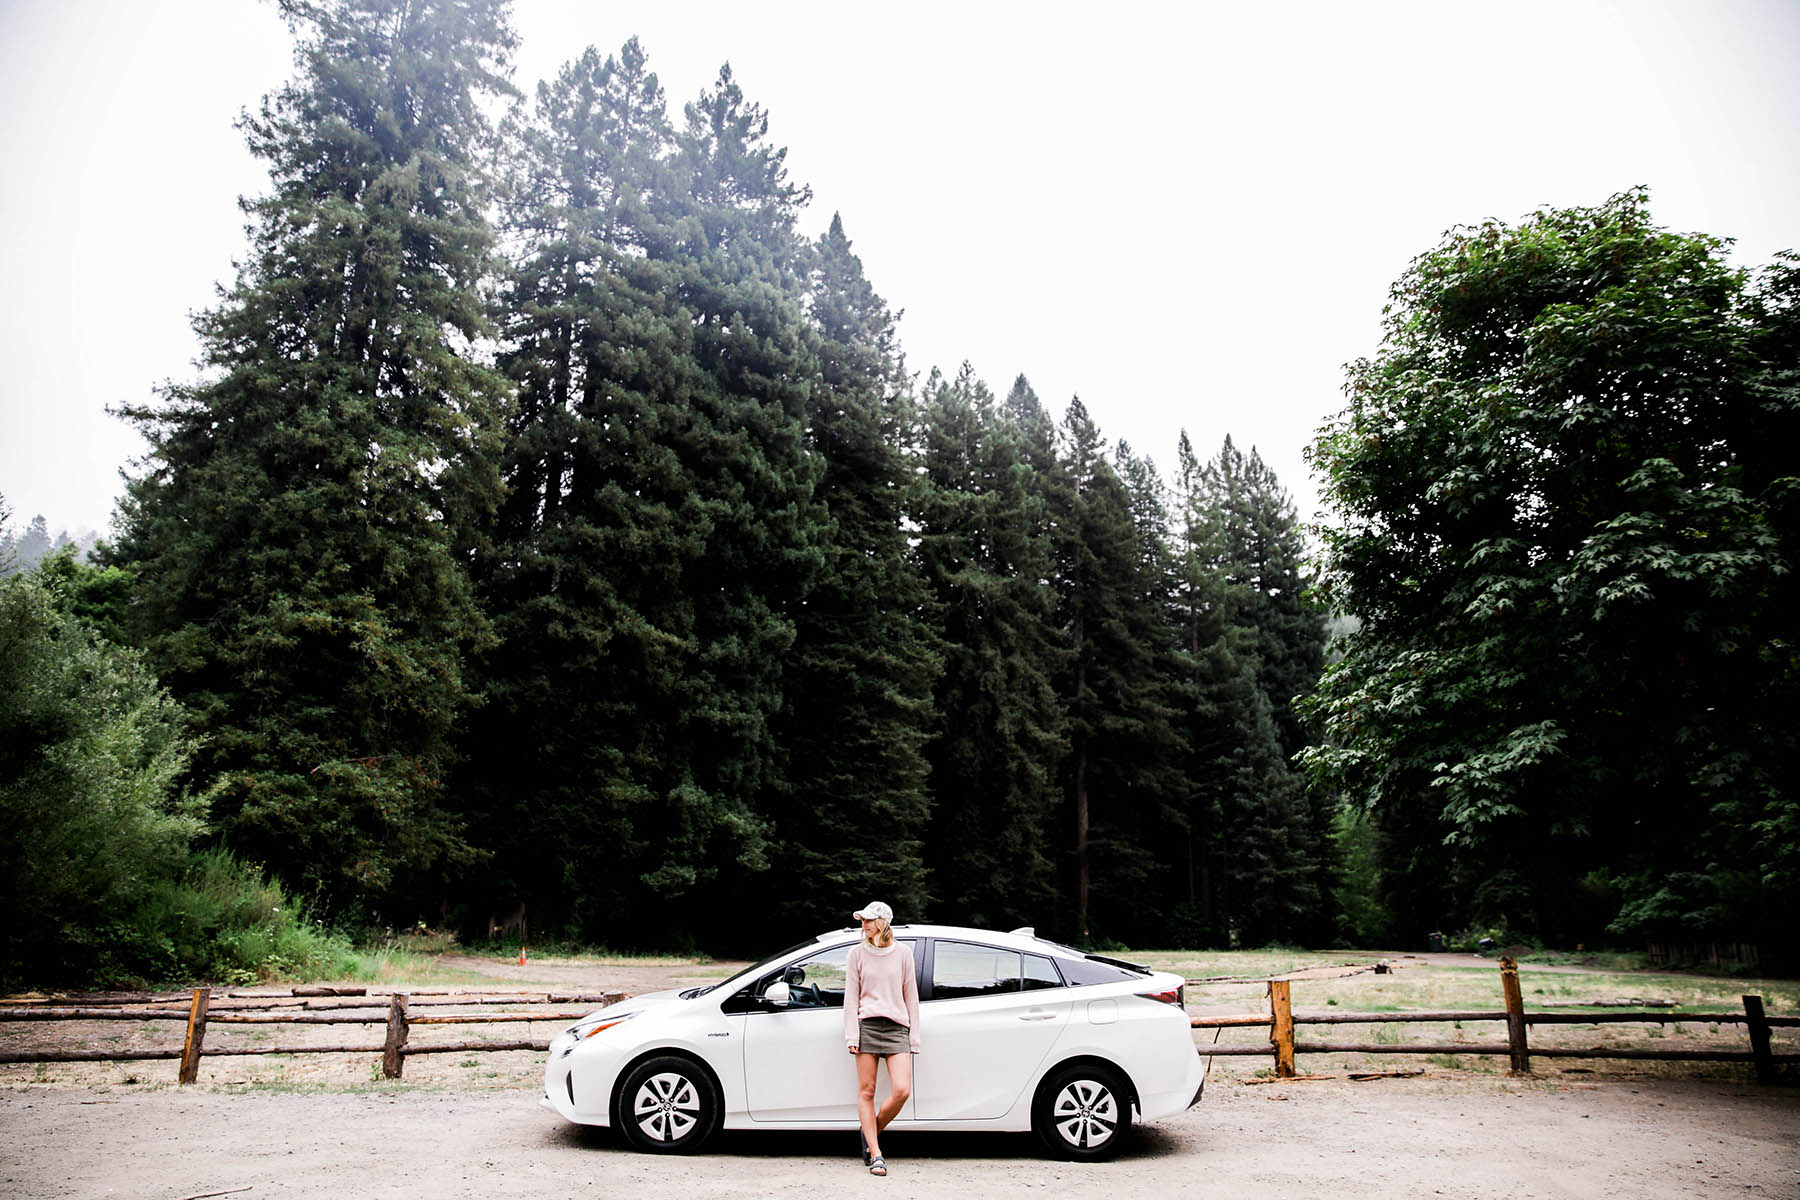 Prius California roadtrip